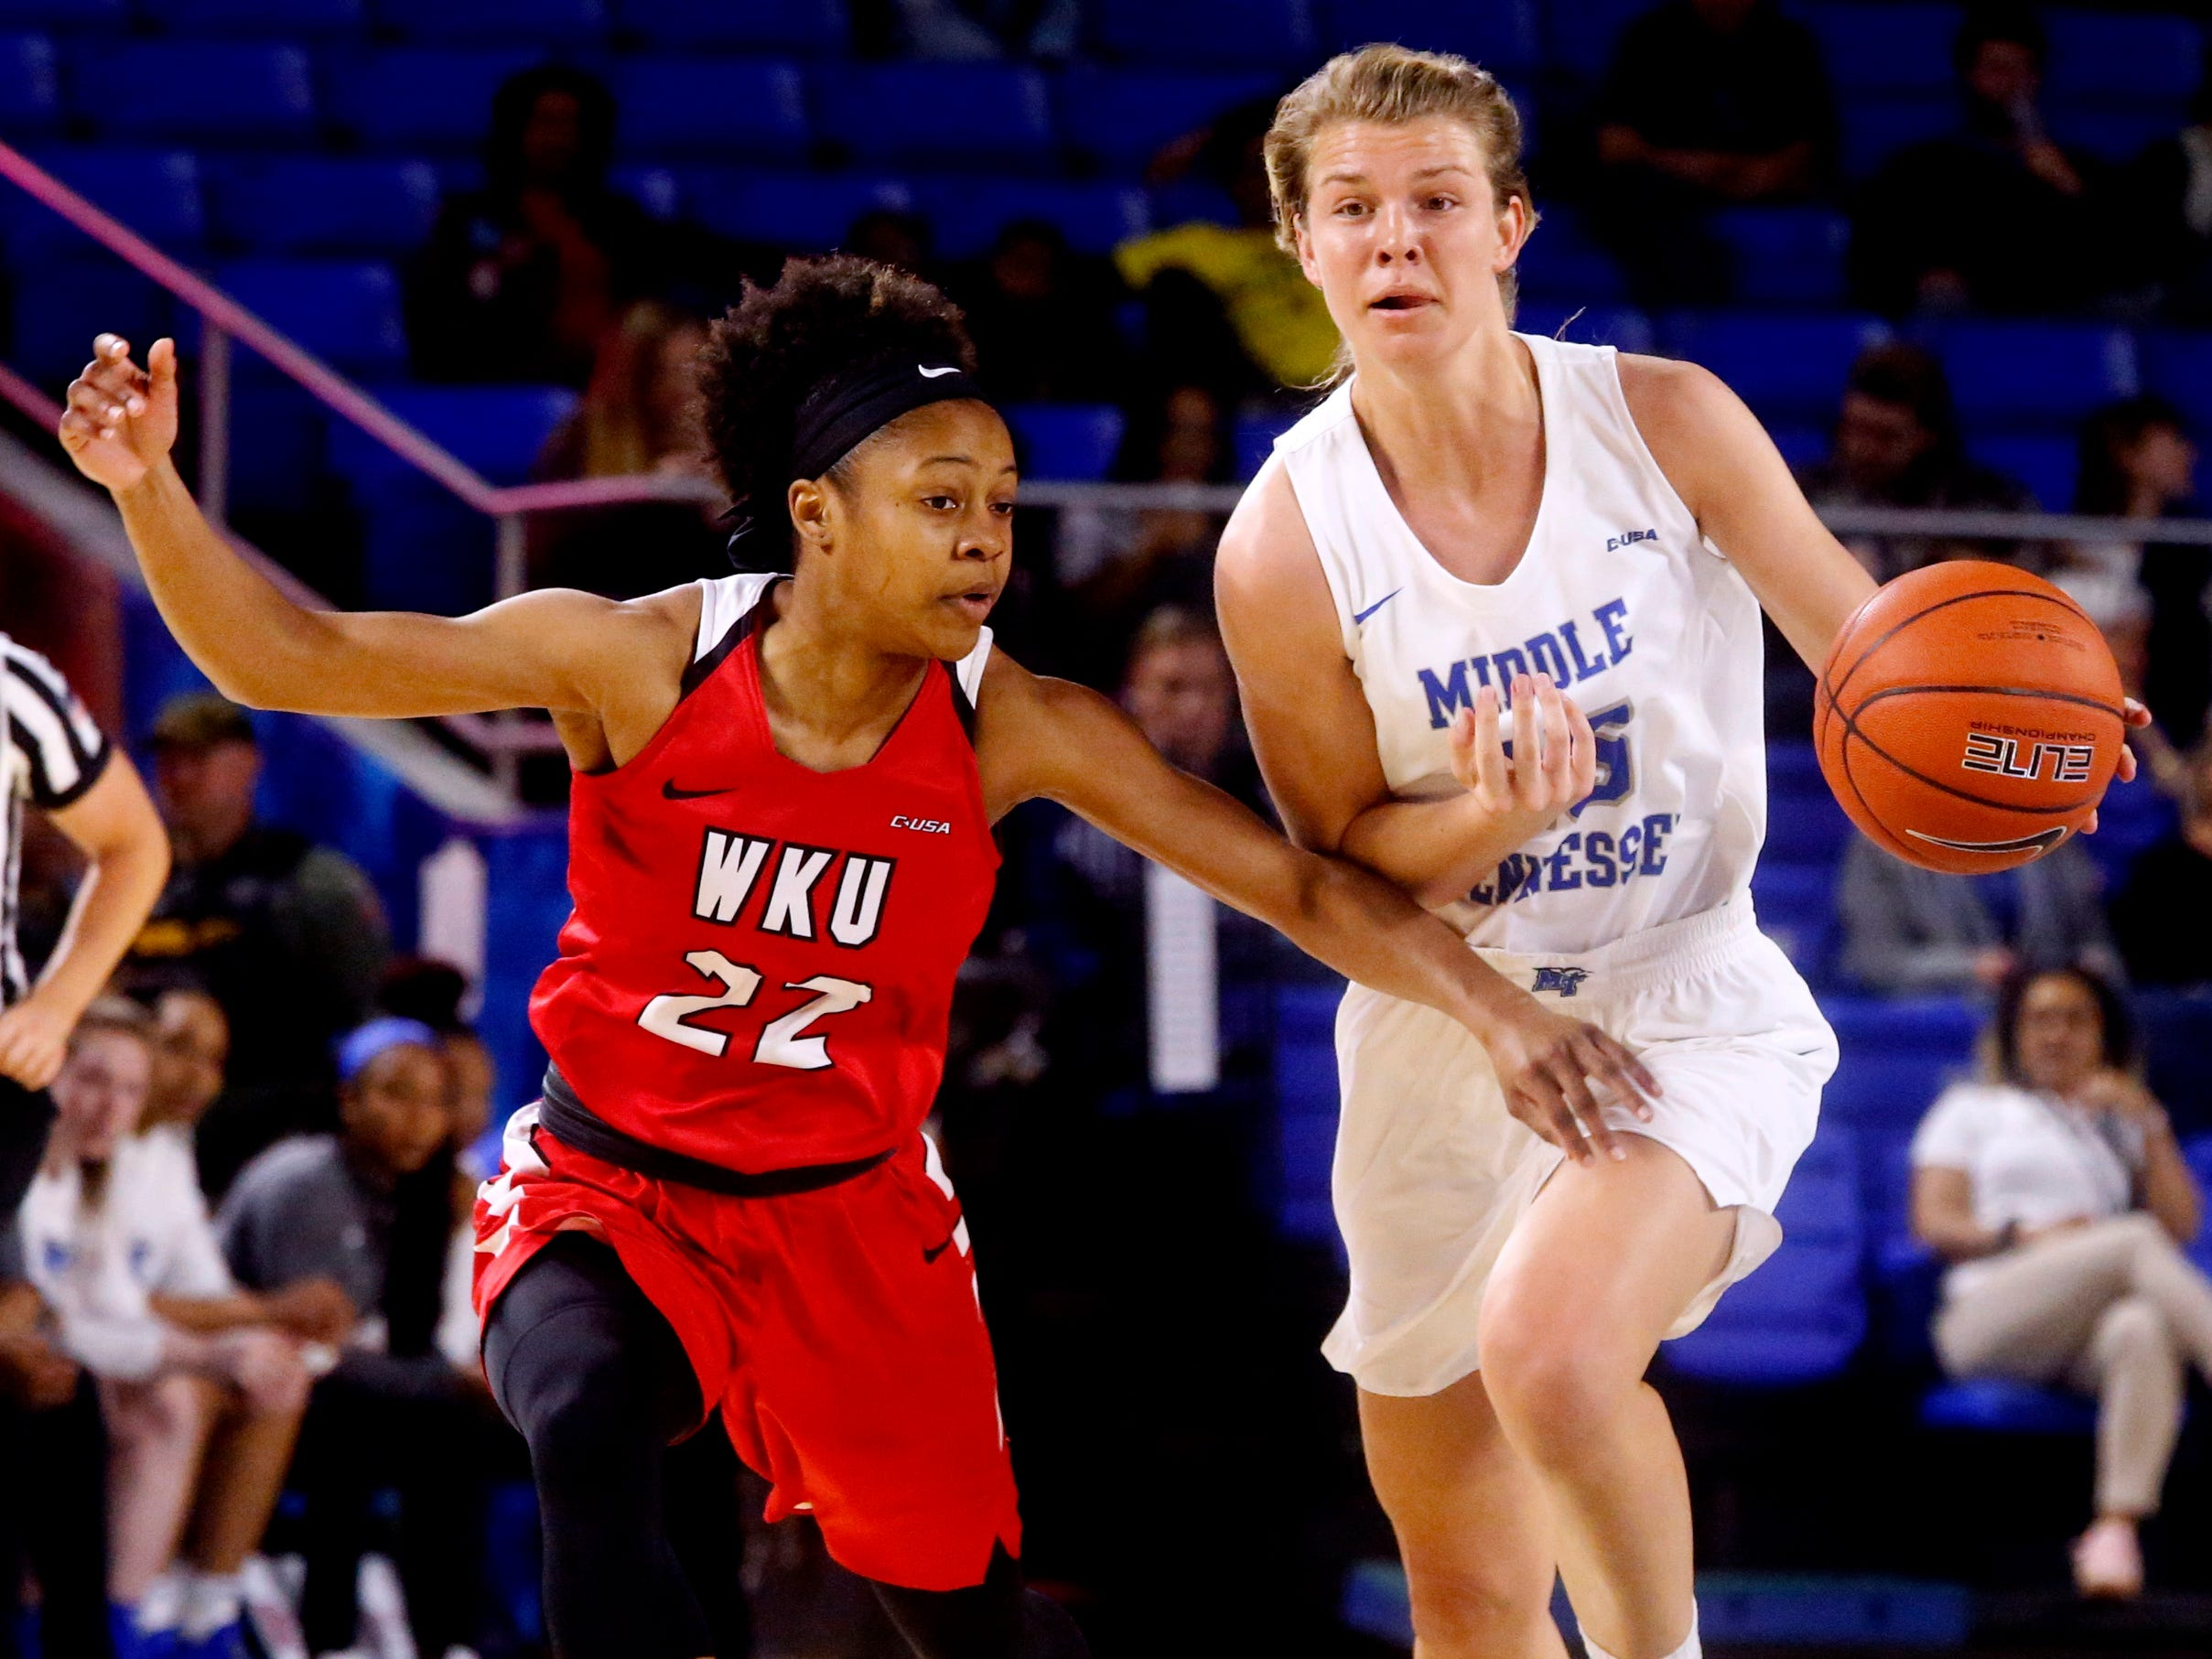 MTSU's guard Anna Jones (15) brings the ball up court as Western's guard Sherry Porter (22) guards her on Thursday, Feb. 14, 2019.